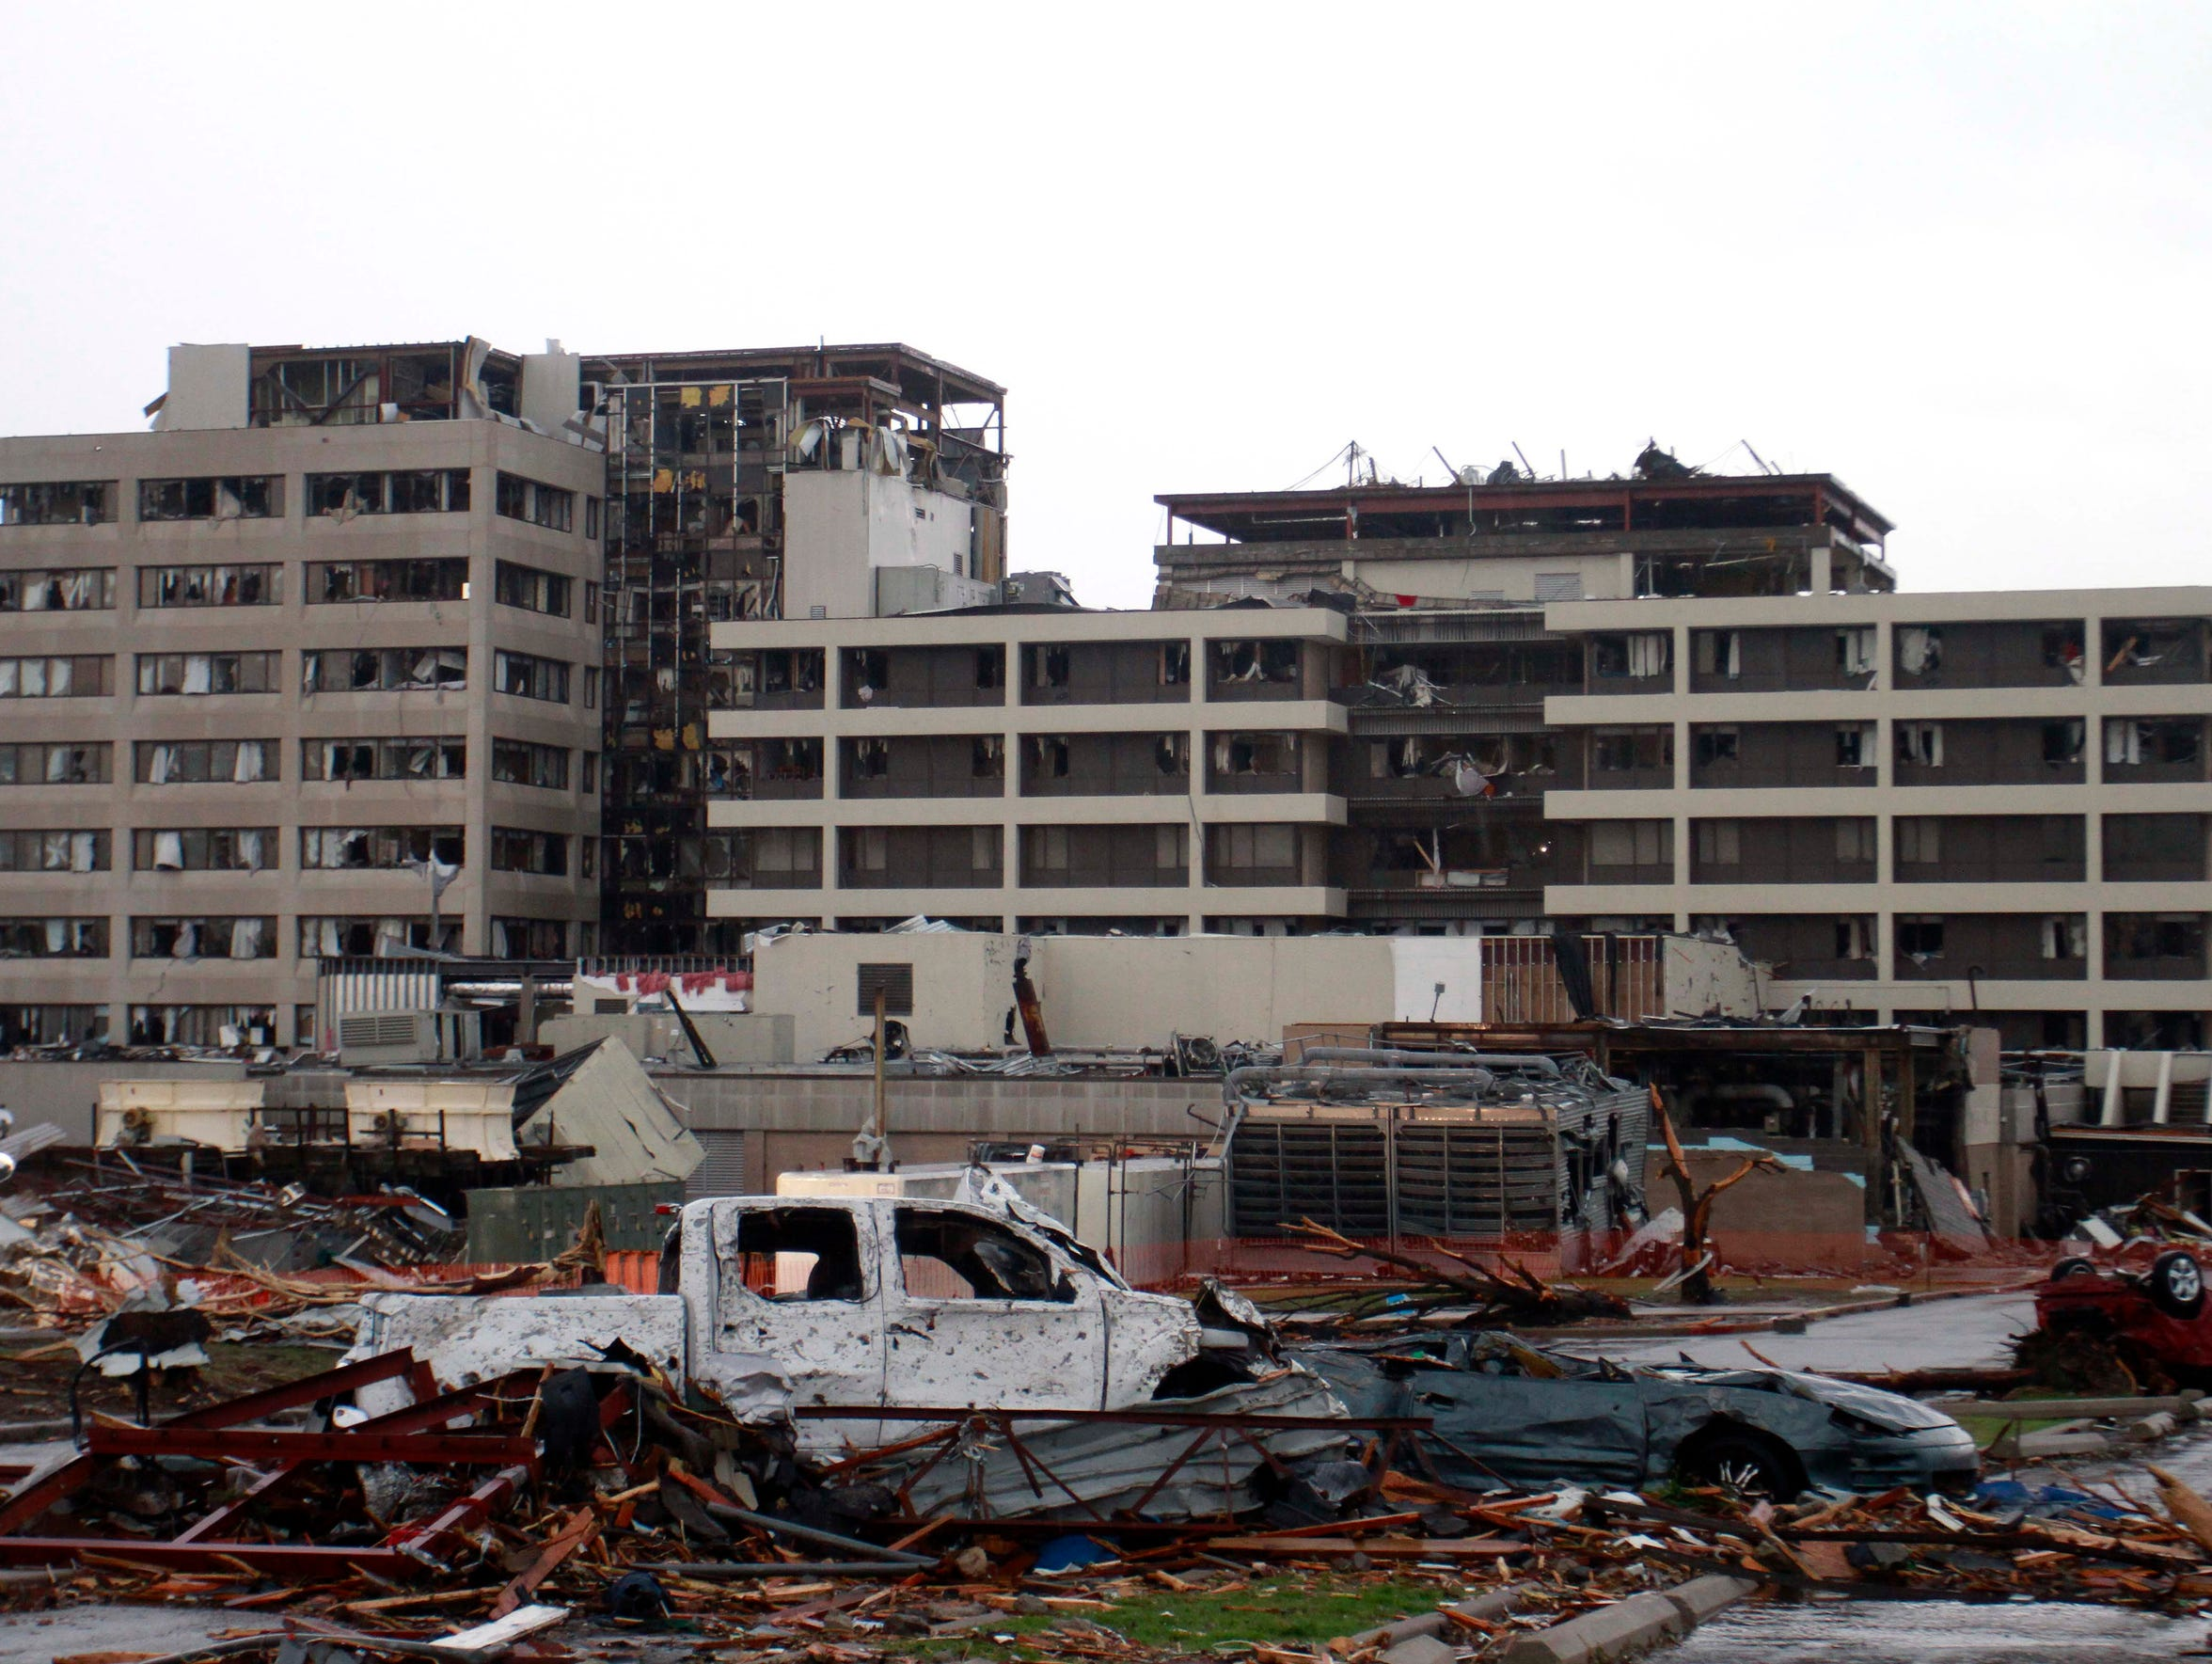 St. Johns Medical Center in Joplin was severely after